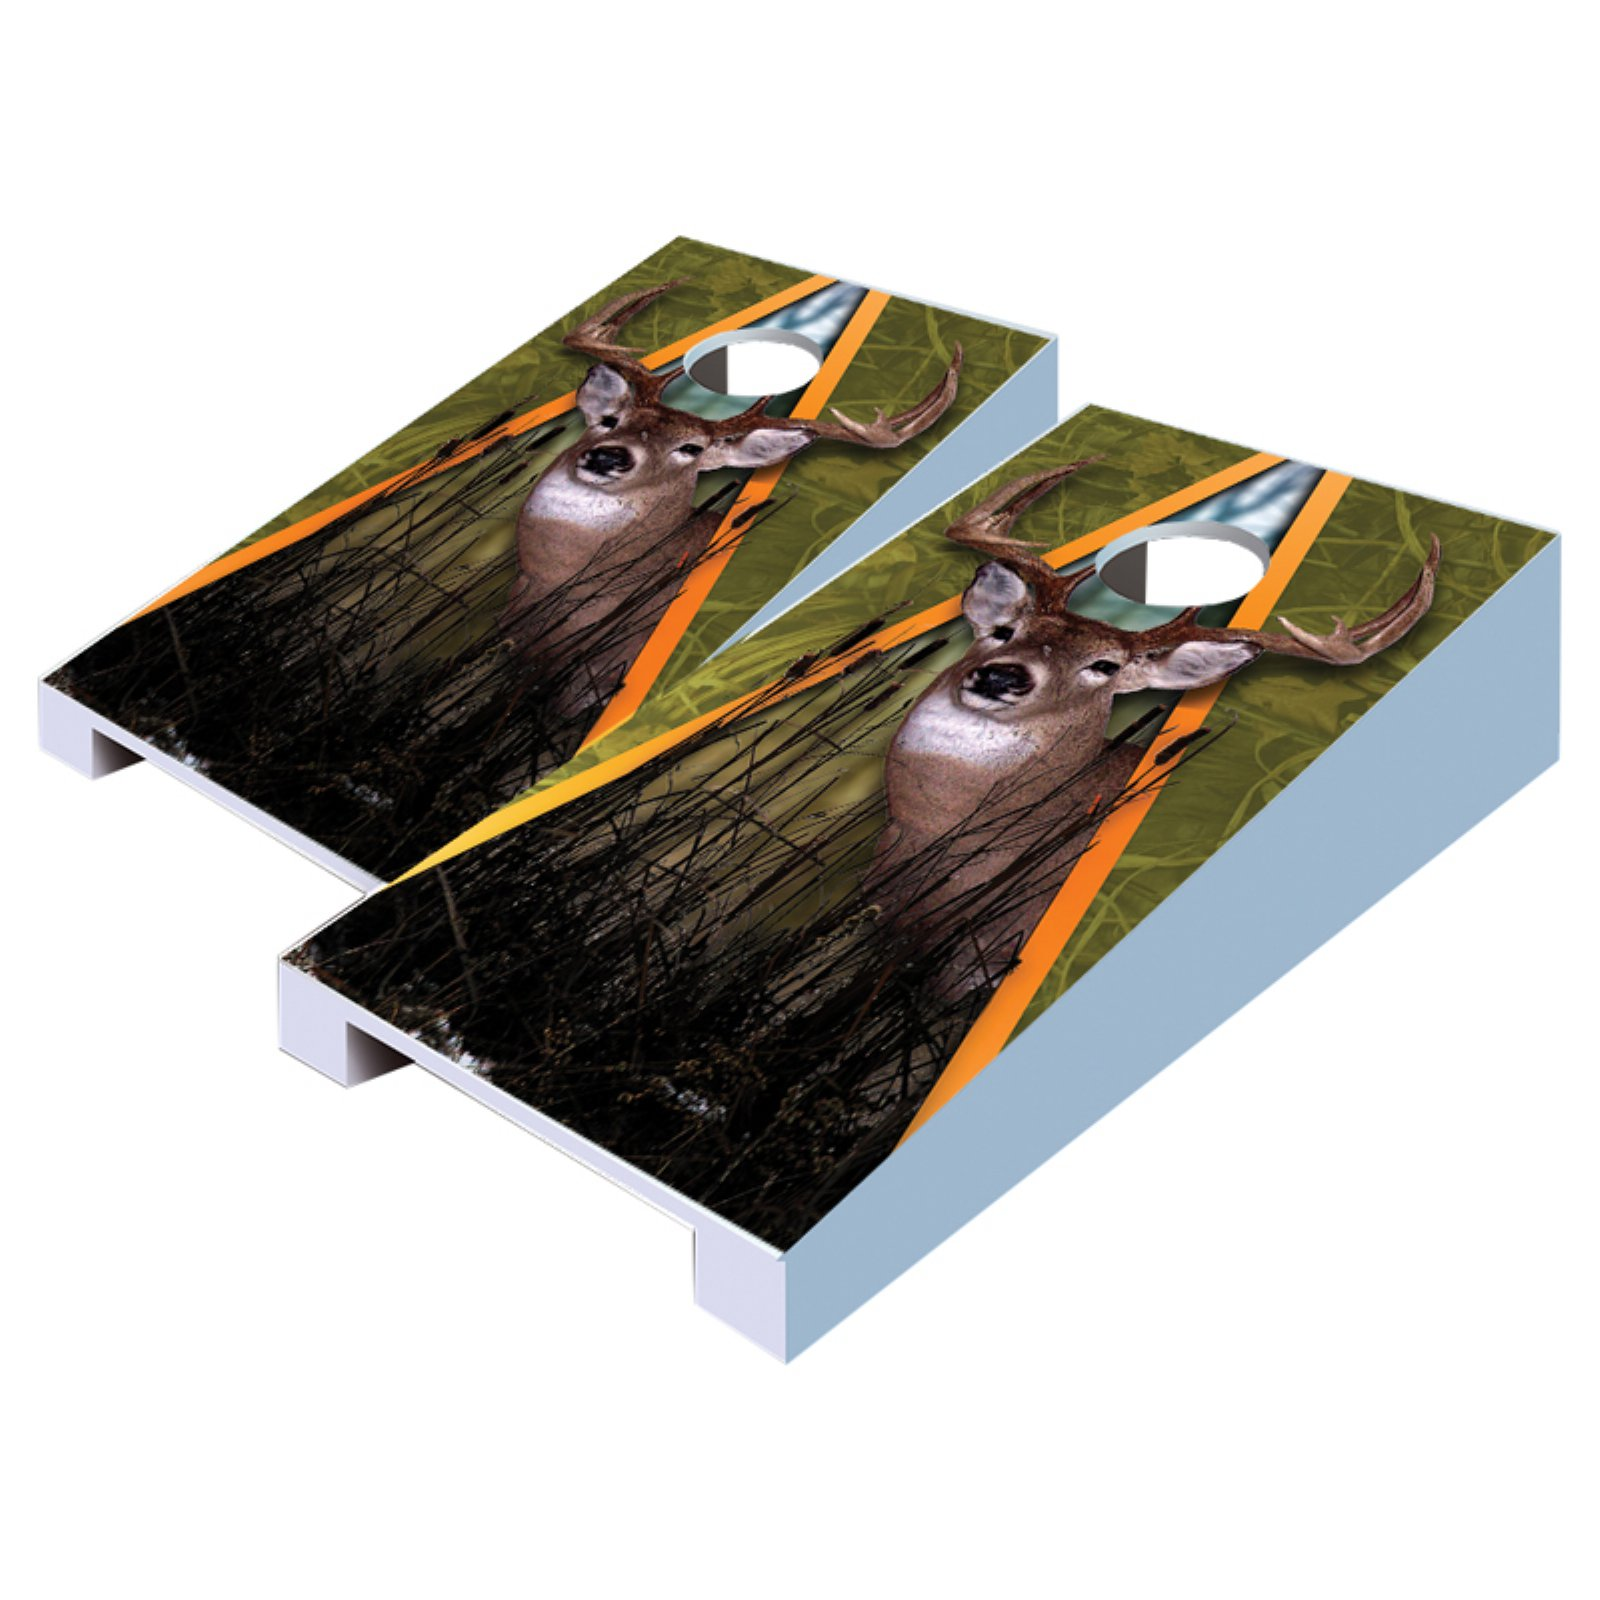 Deer Tabletop Cornhole Set by AJJ Cornhole